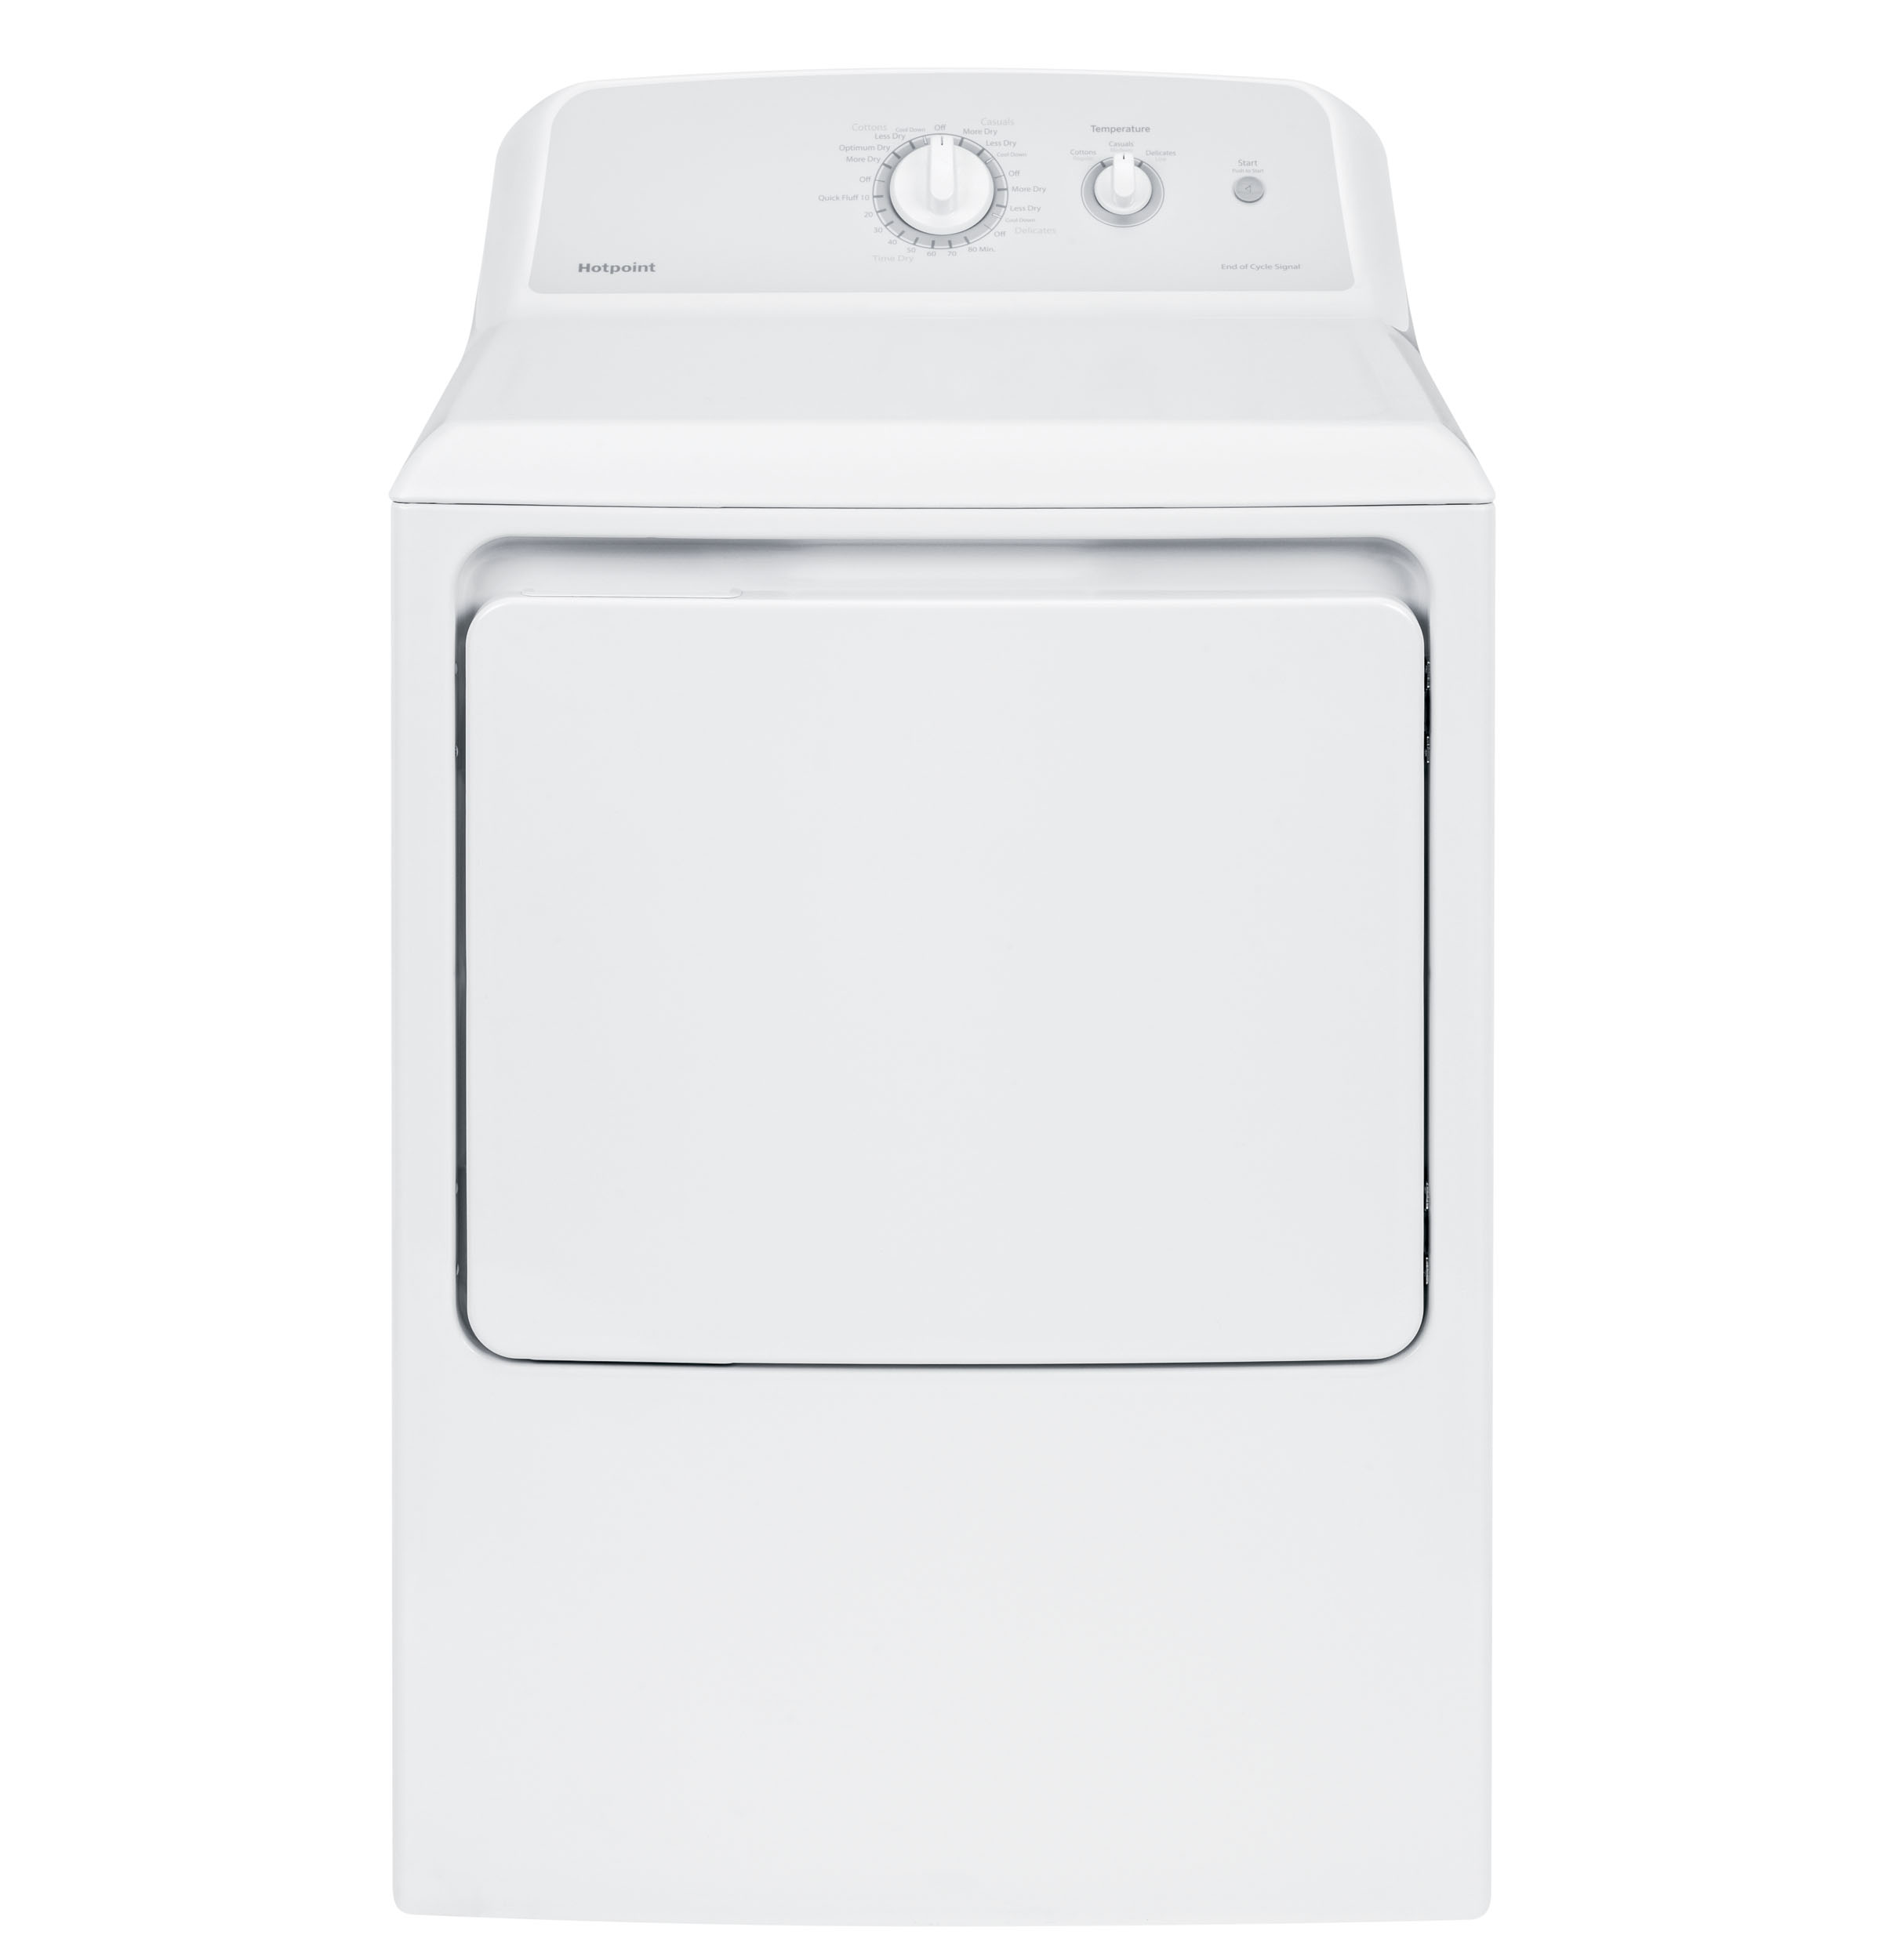 Hotpoint Hotpoint® 6.2 cu. ft. Capacity aluminized alloy Electric Dryer